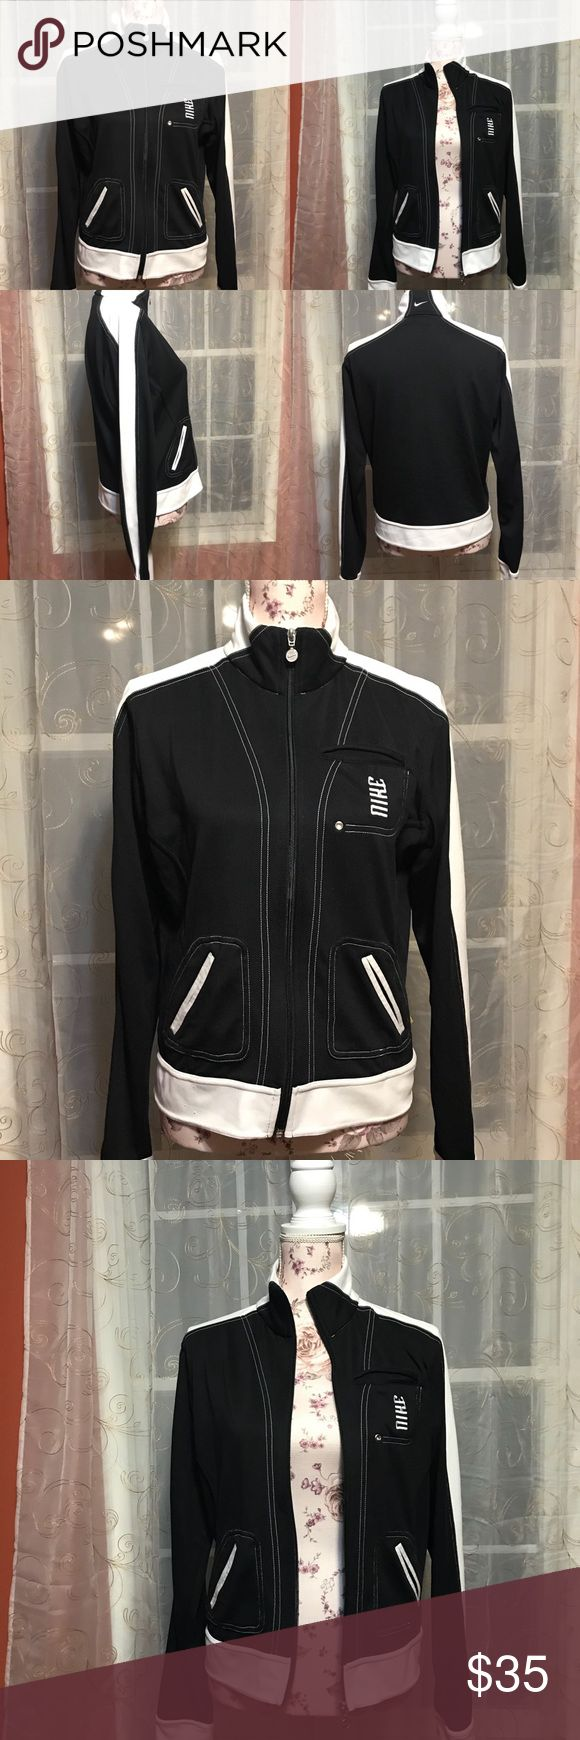 Nike black and white zip up Nike zip up size large no rips or stains working zipper logo embroidered on the back NIKE embroidered on front pocket has 3 small pockets 💕open to offers💕 Nike Jackets & Coats